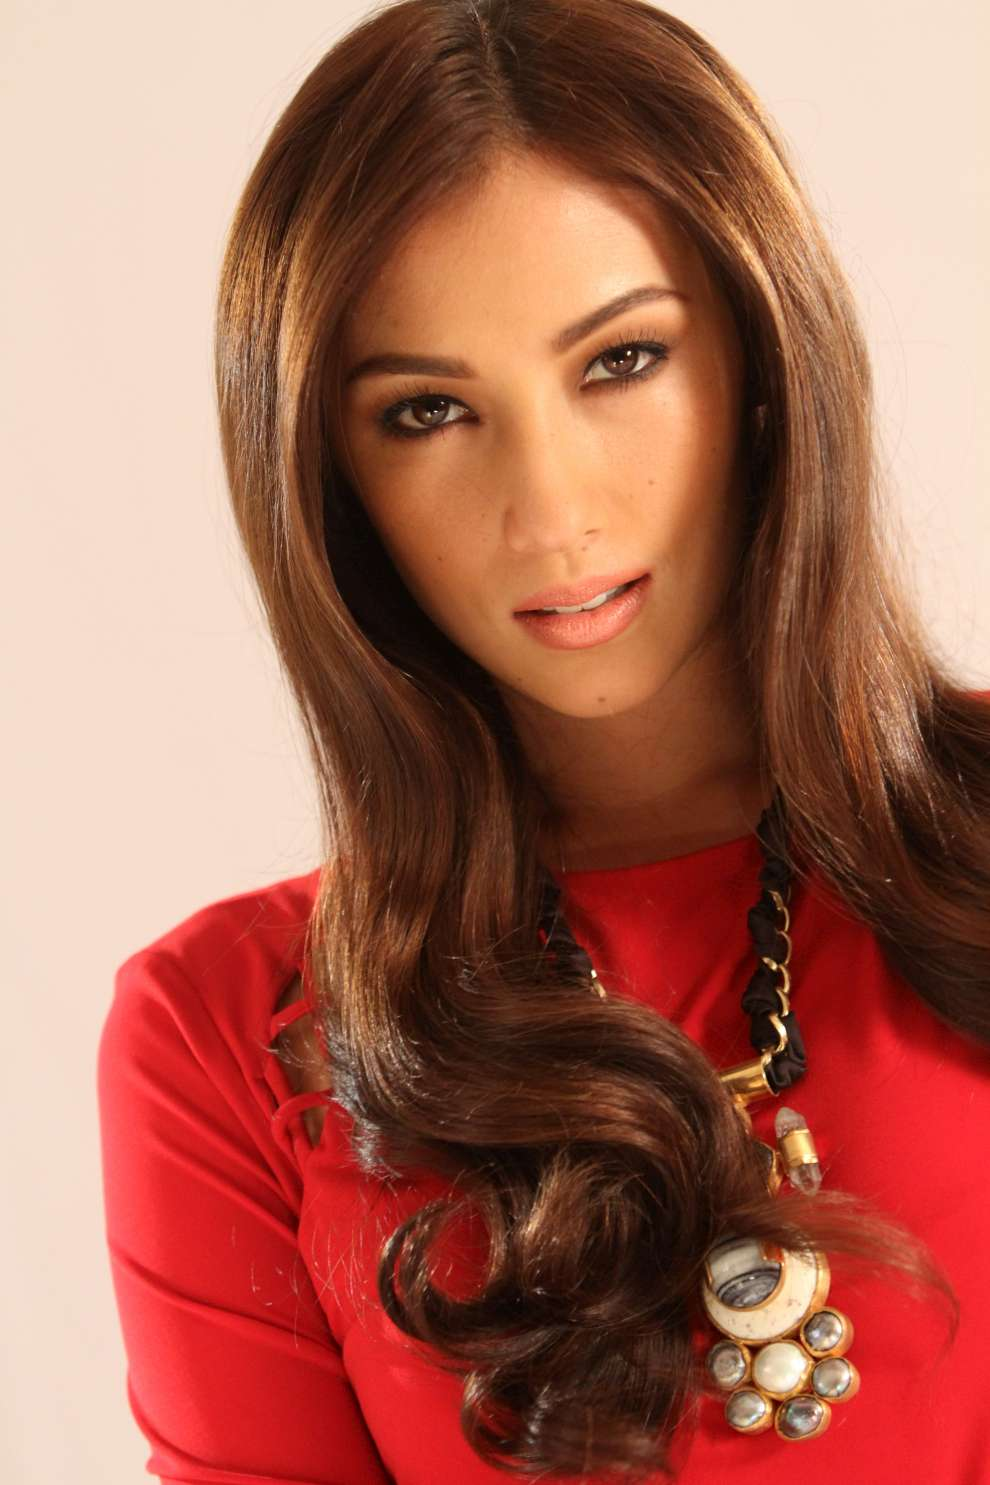 Filipinas Beauty French-Filipina Actress Solenn Heussaff-1983